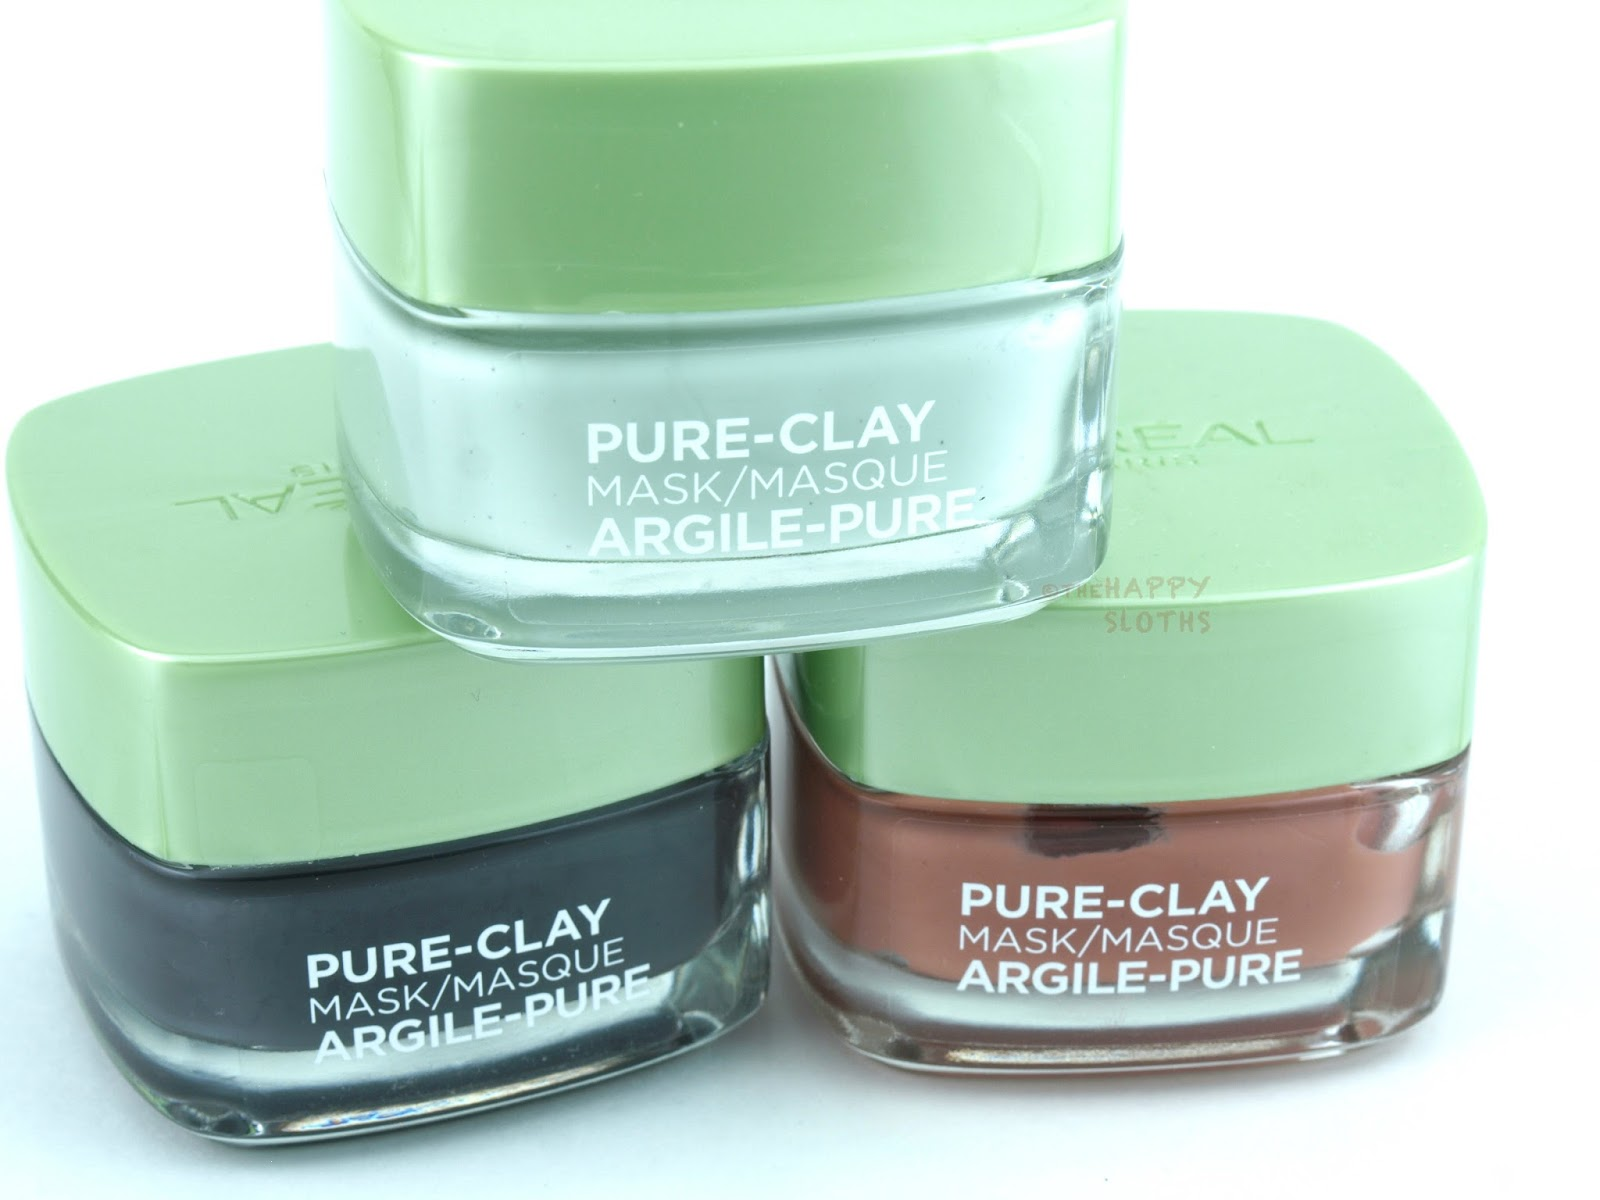 L'Oreal Pure-Clay Masks: Review